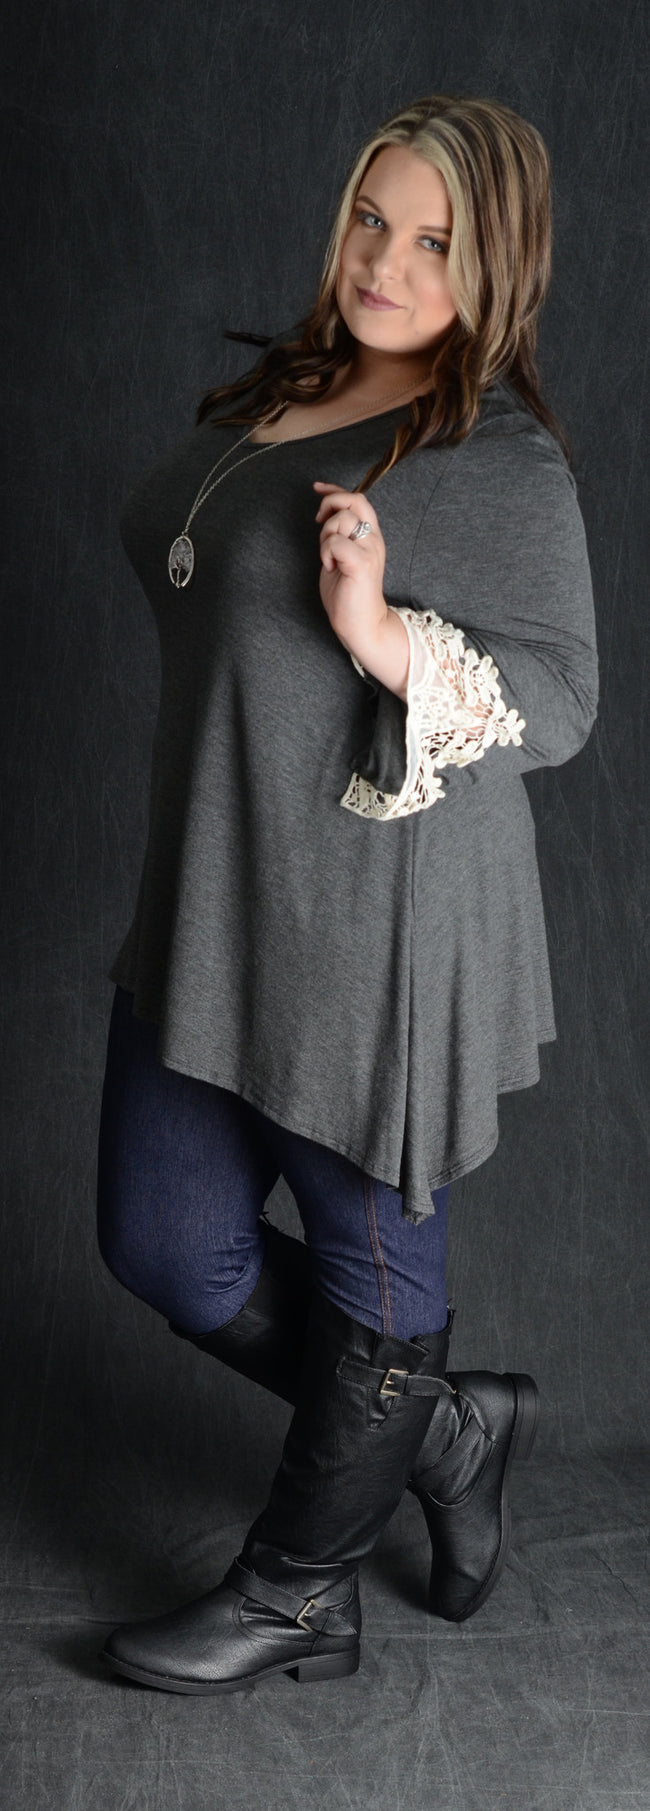 Charcoal Crochet Cuff Tunic Top - www.mycurvystore.com - Curvy Boutique - Plus Size